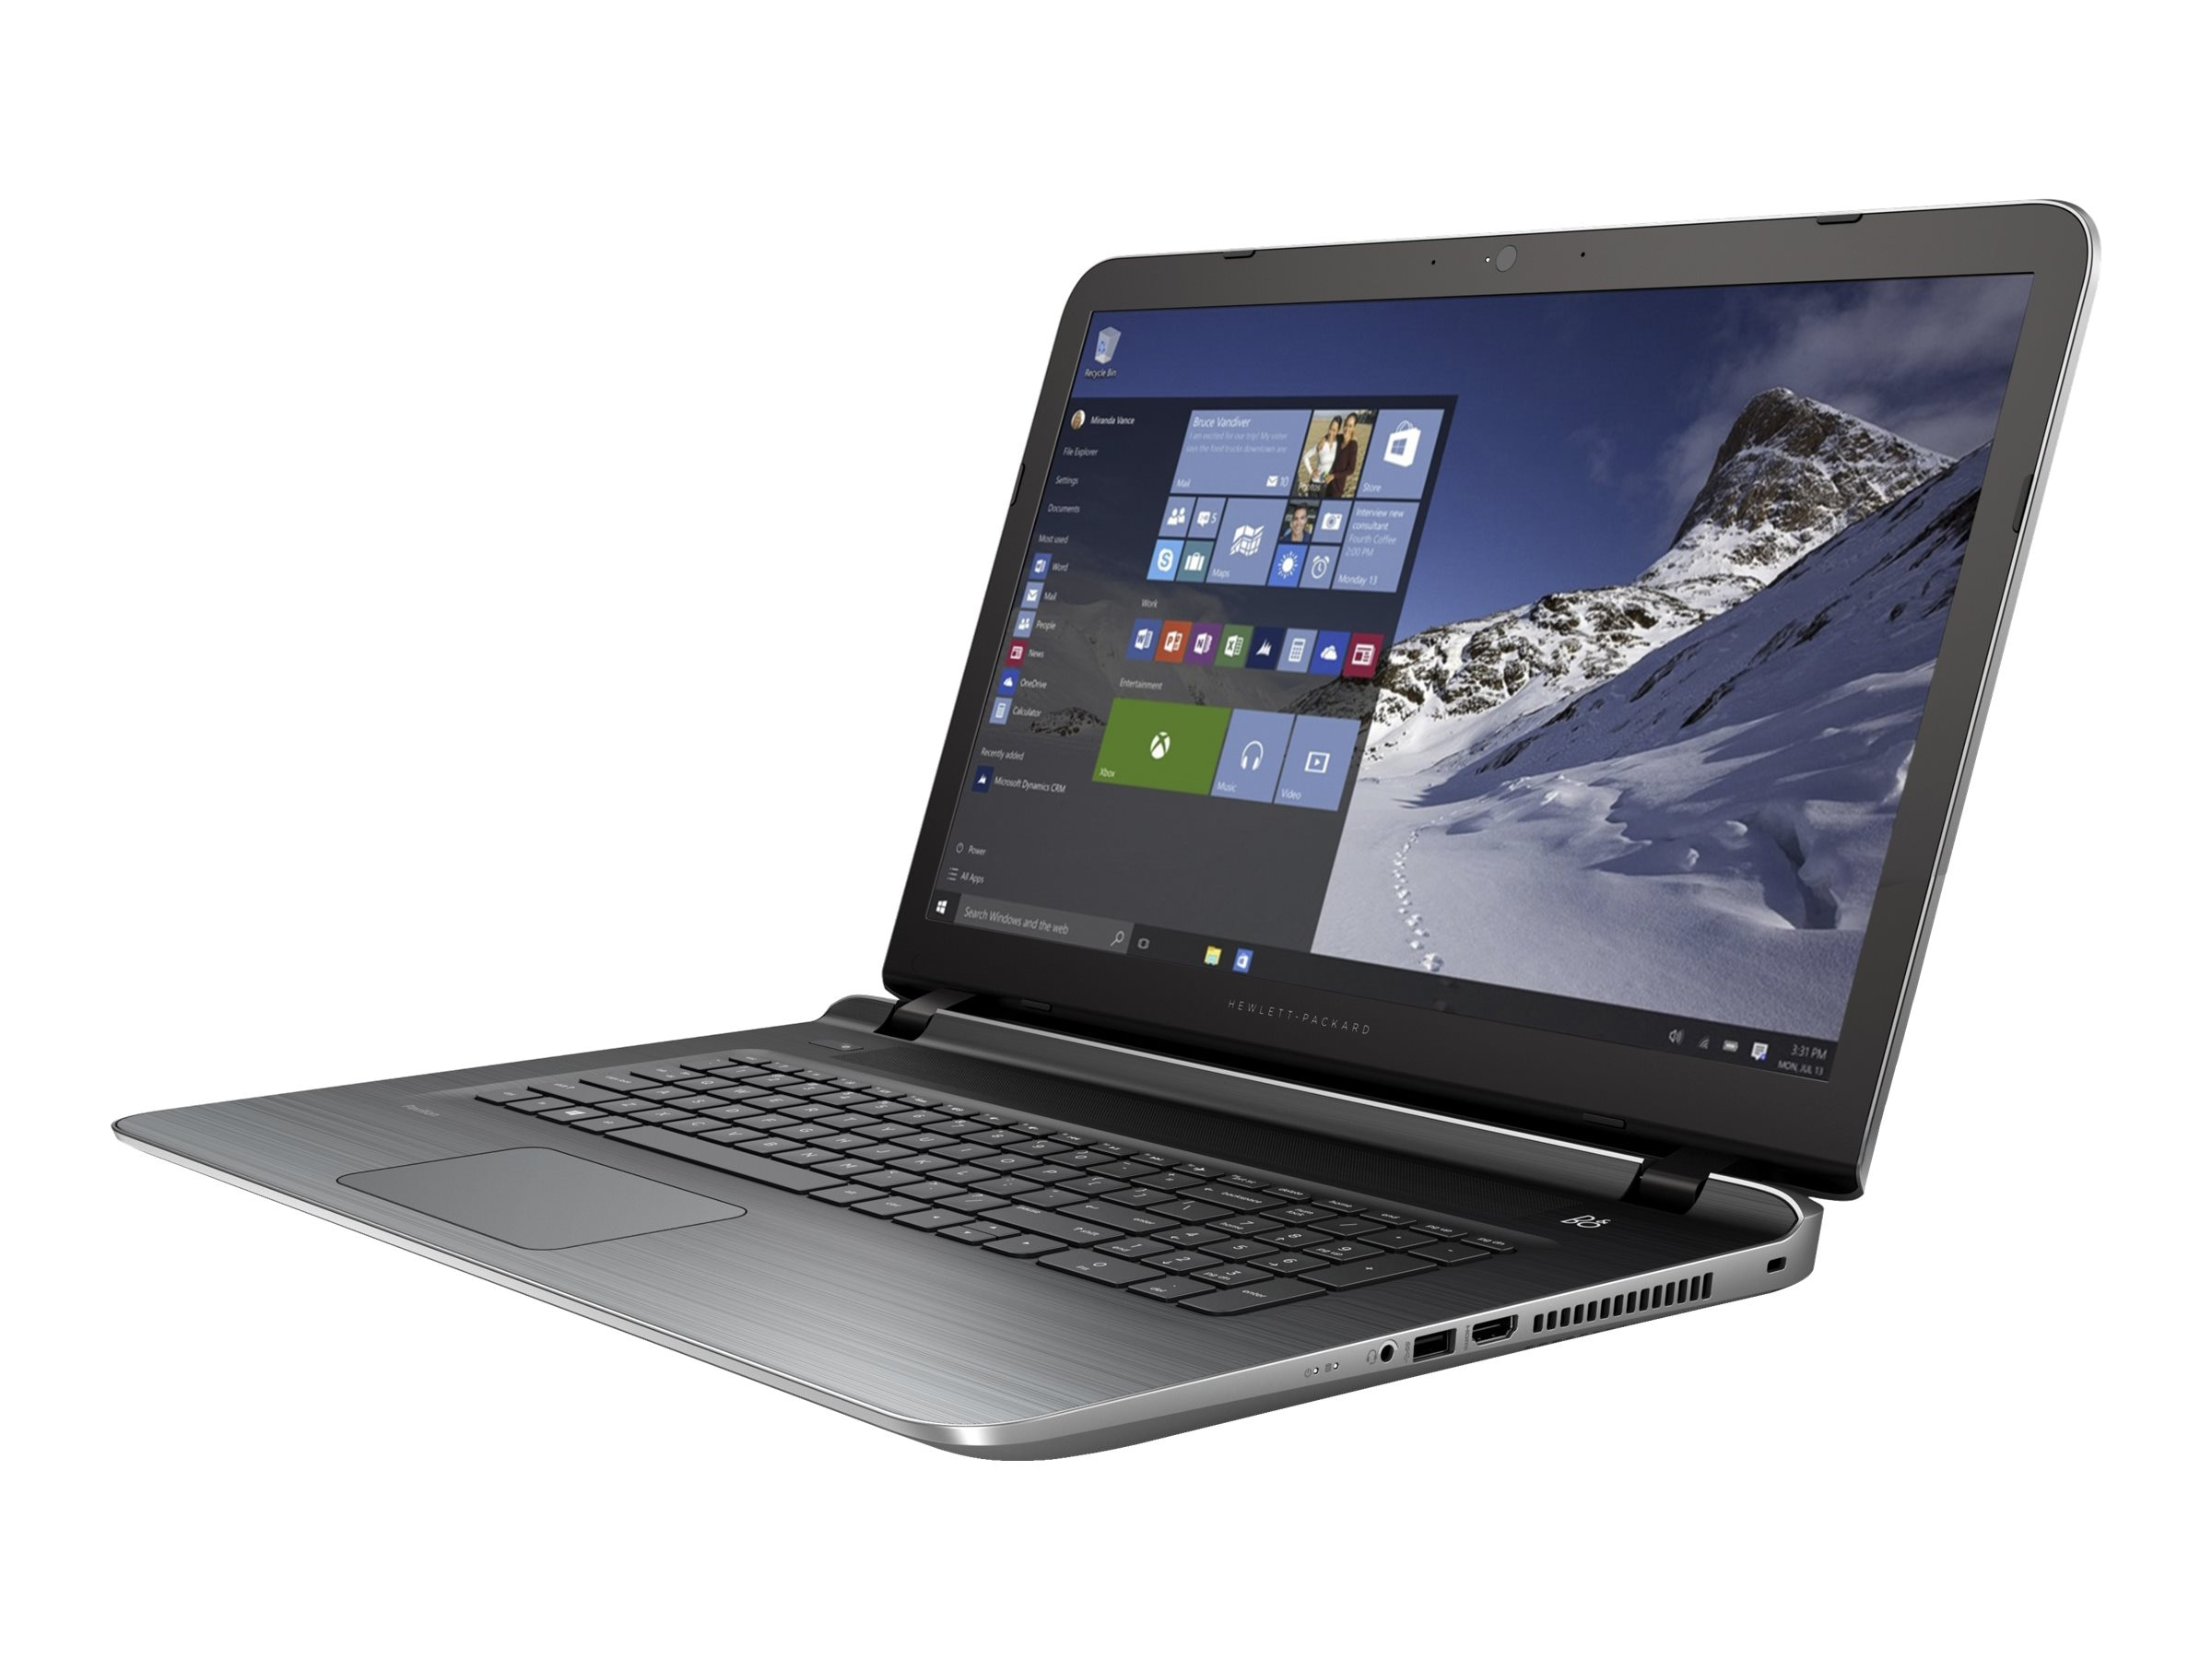 HP Pavilion 17-G140nr Notebook PC